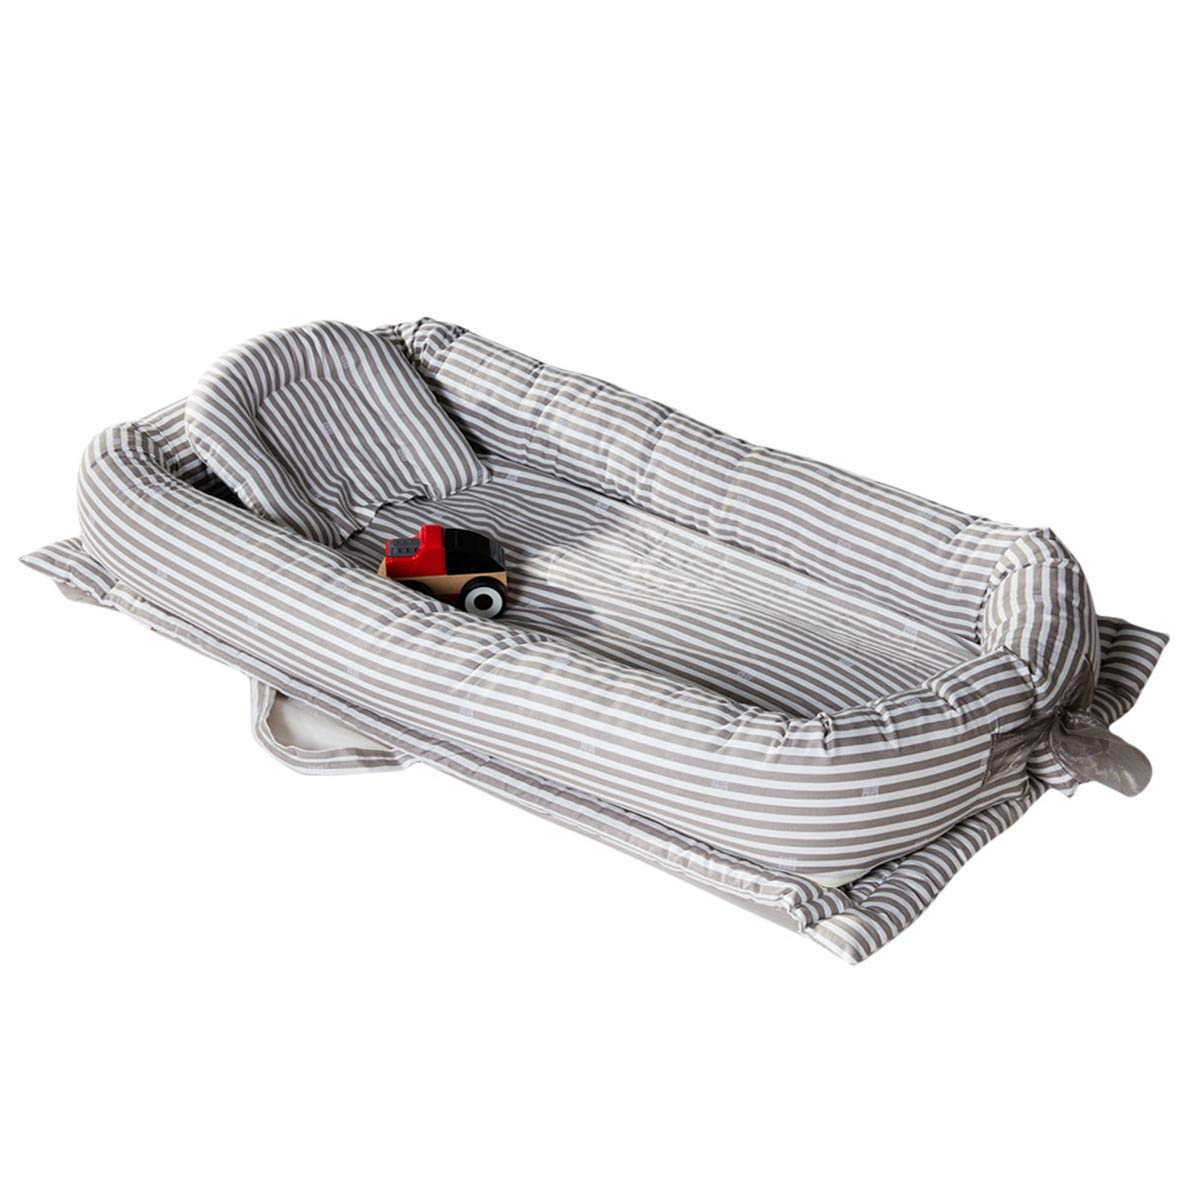 Mories Baby Bassinet for Bed, Newborn Portable Crib for Bedroom/Travel, Super Soft and Breathable Newborn Infant Bassinet (Gray) by Mories